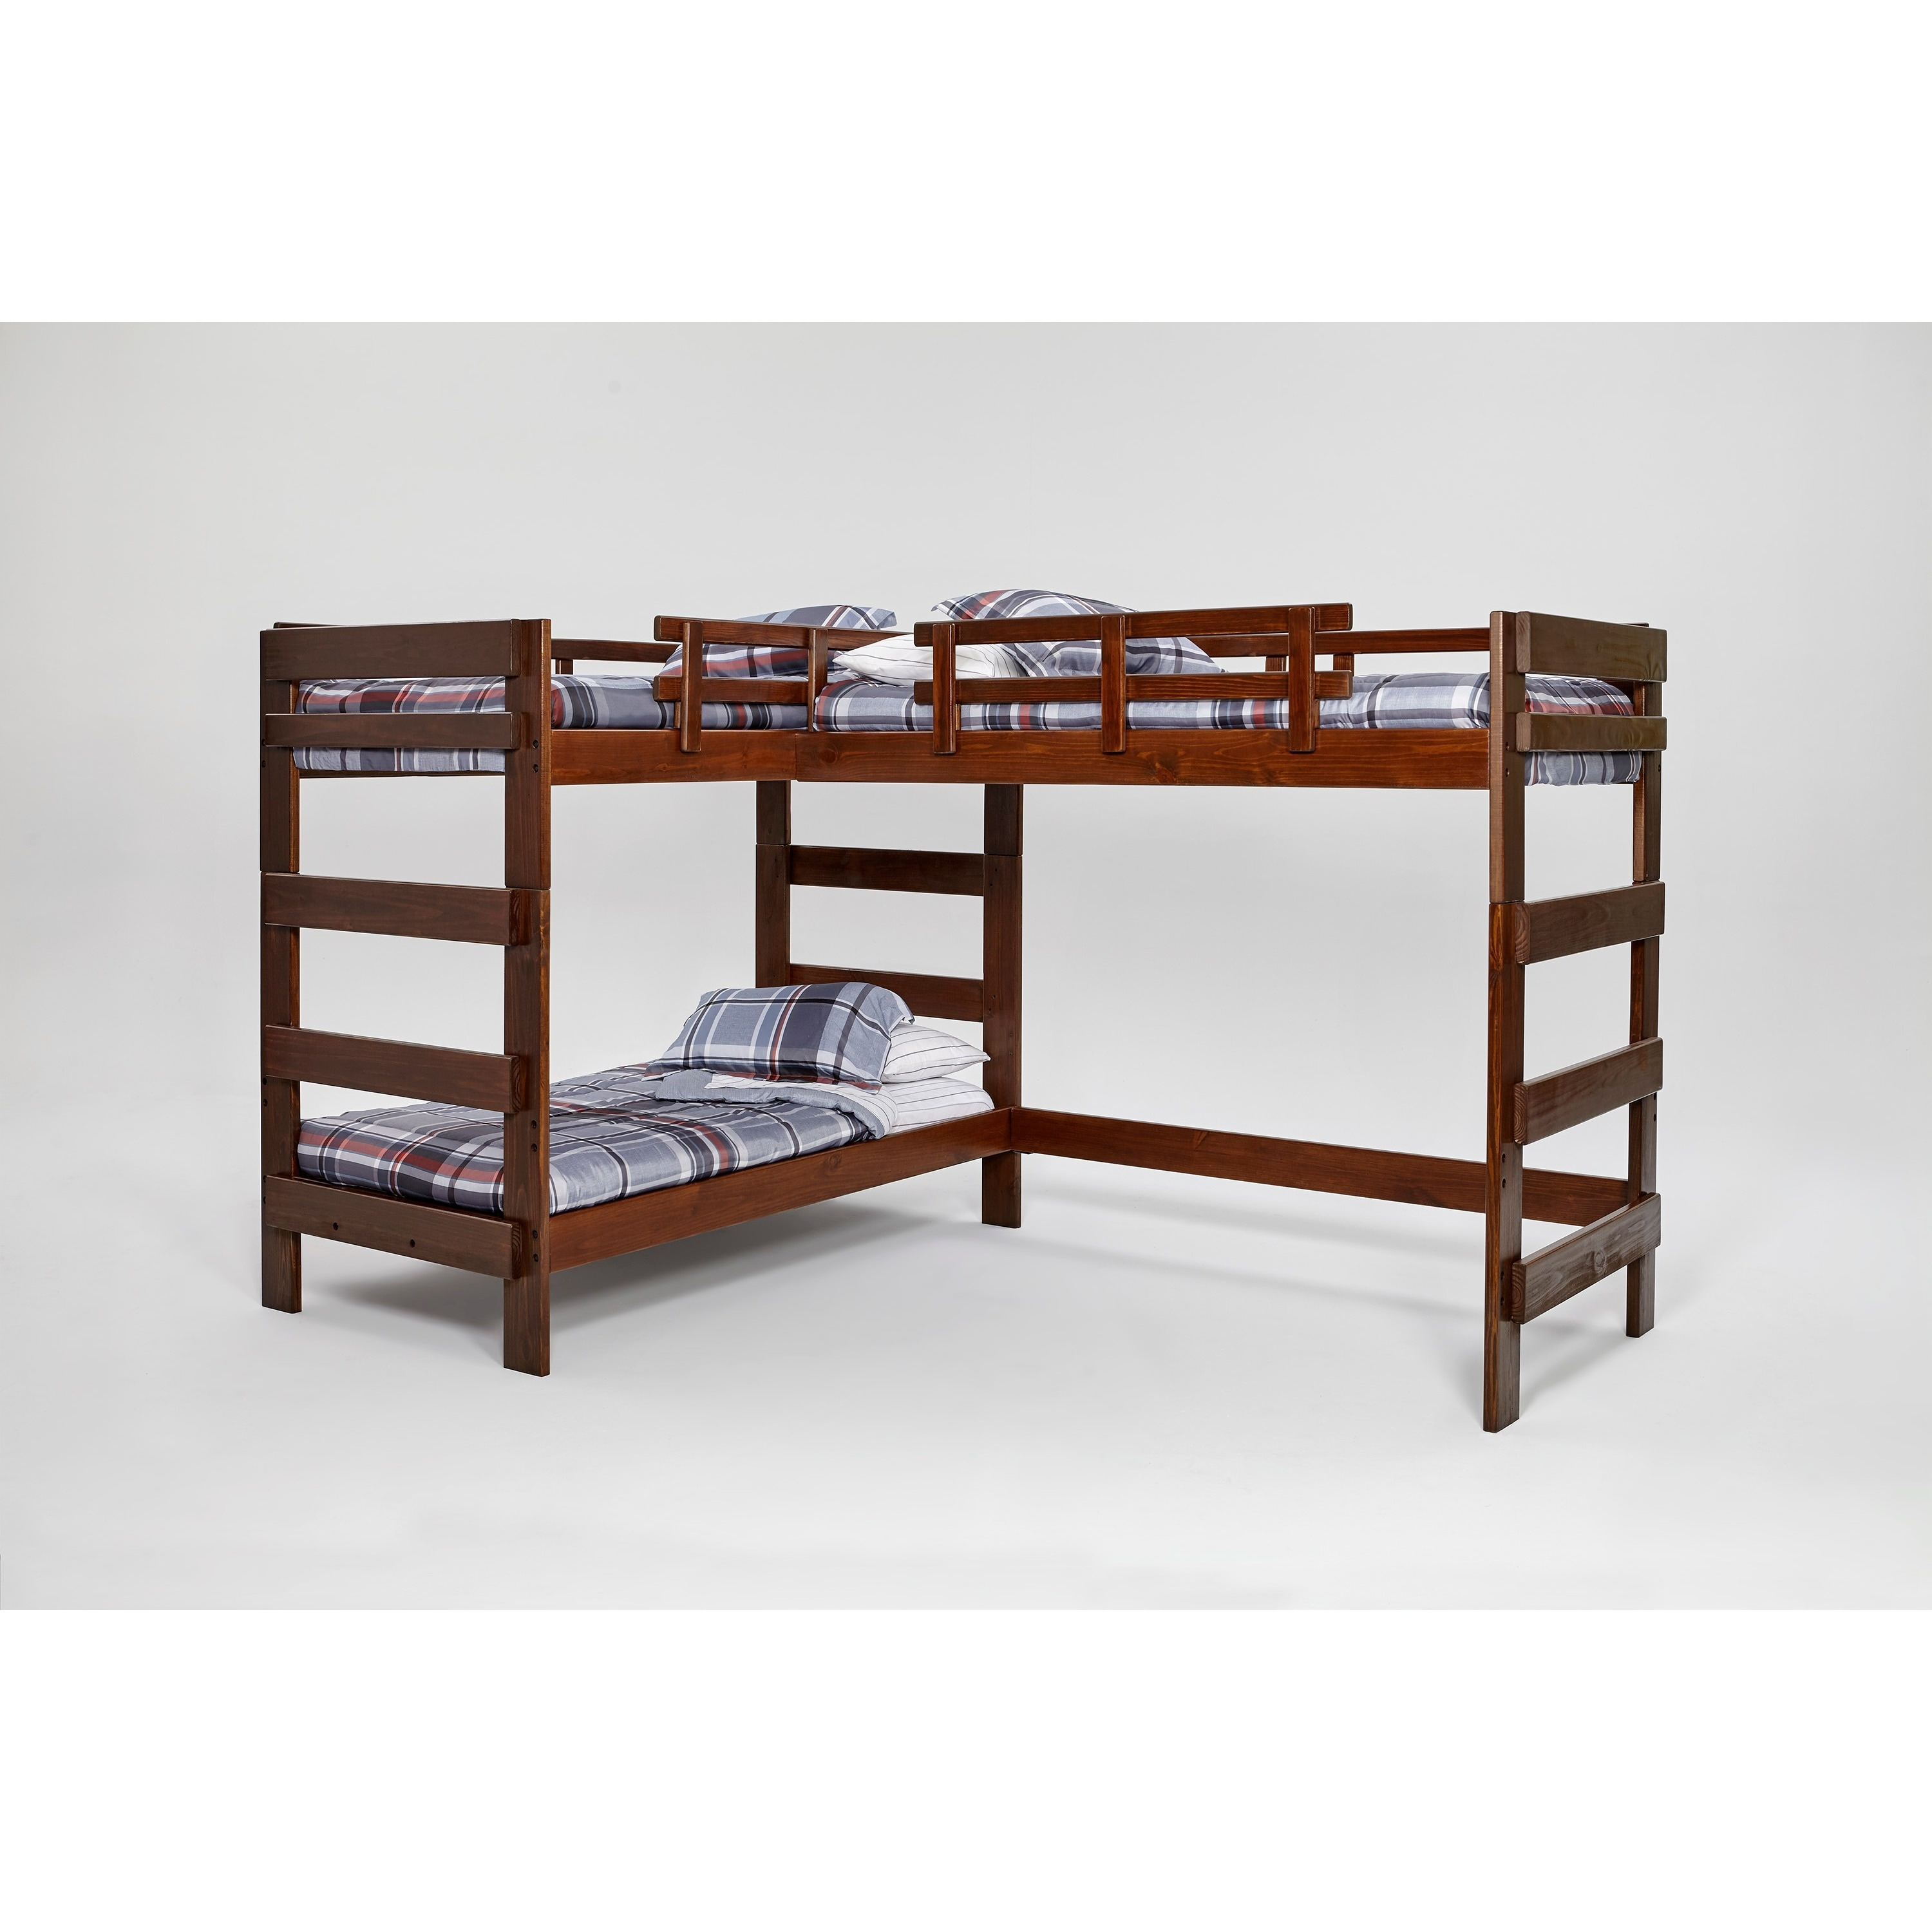 Shop Woodcrest Heartland Collection L-shaped Twin or Futon Bunk ...